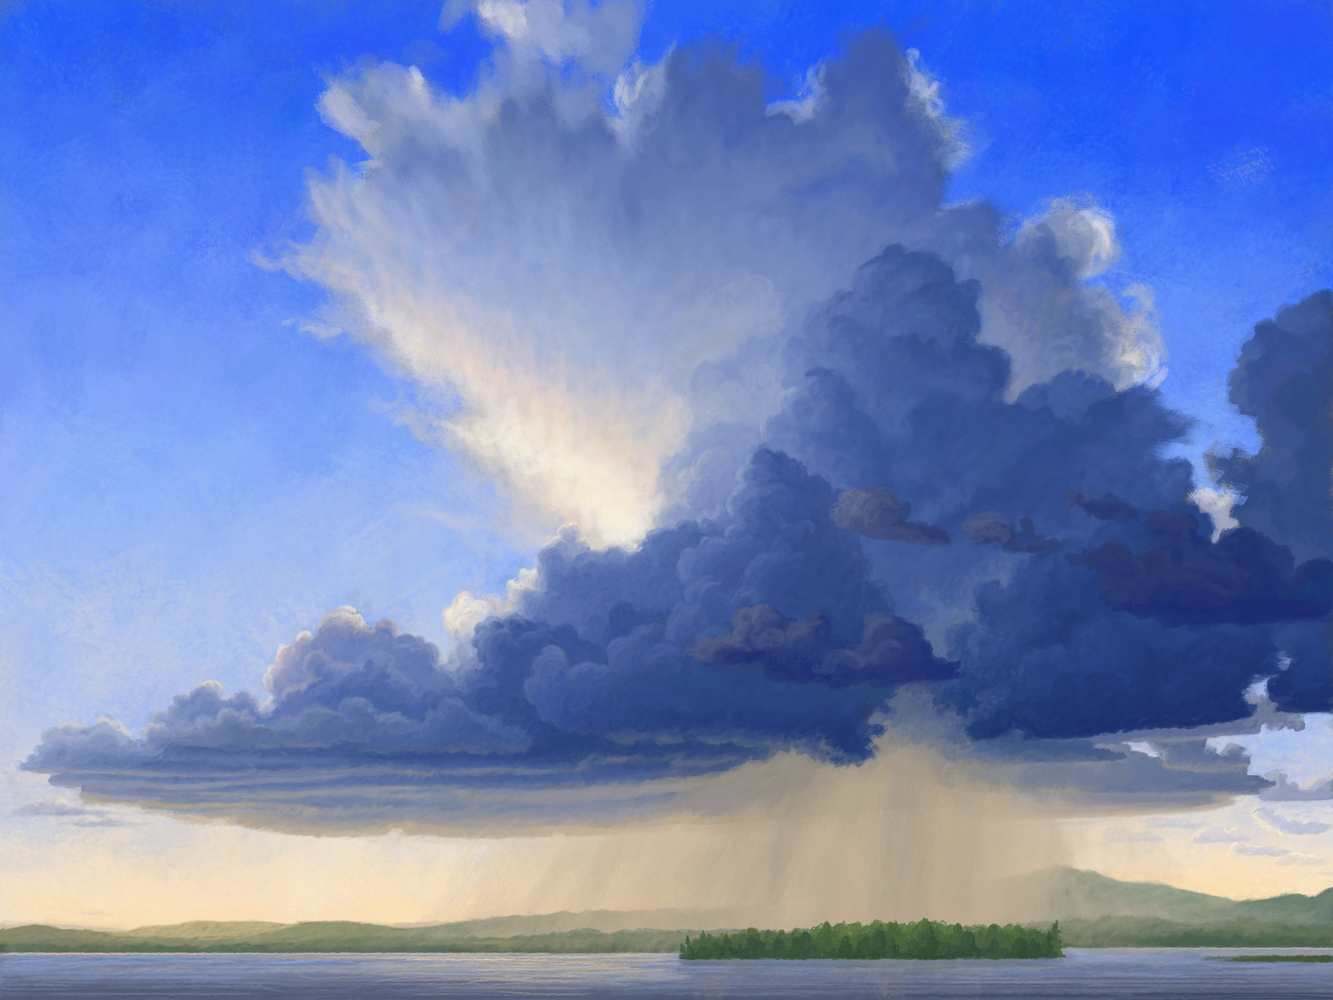 The Storm is coming: Lake Brome